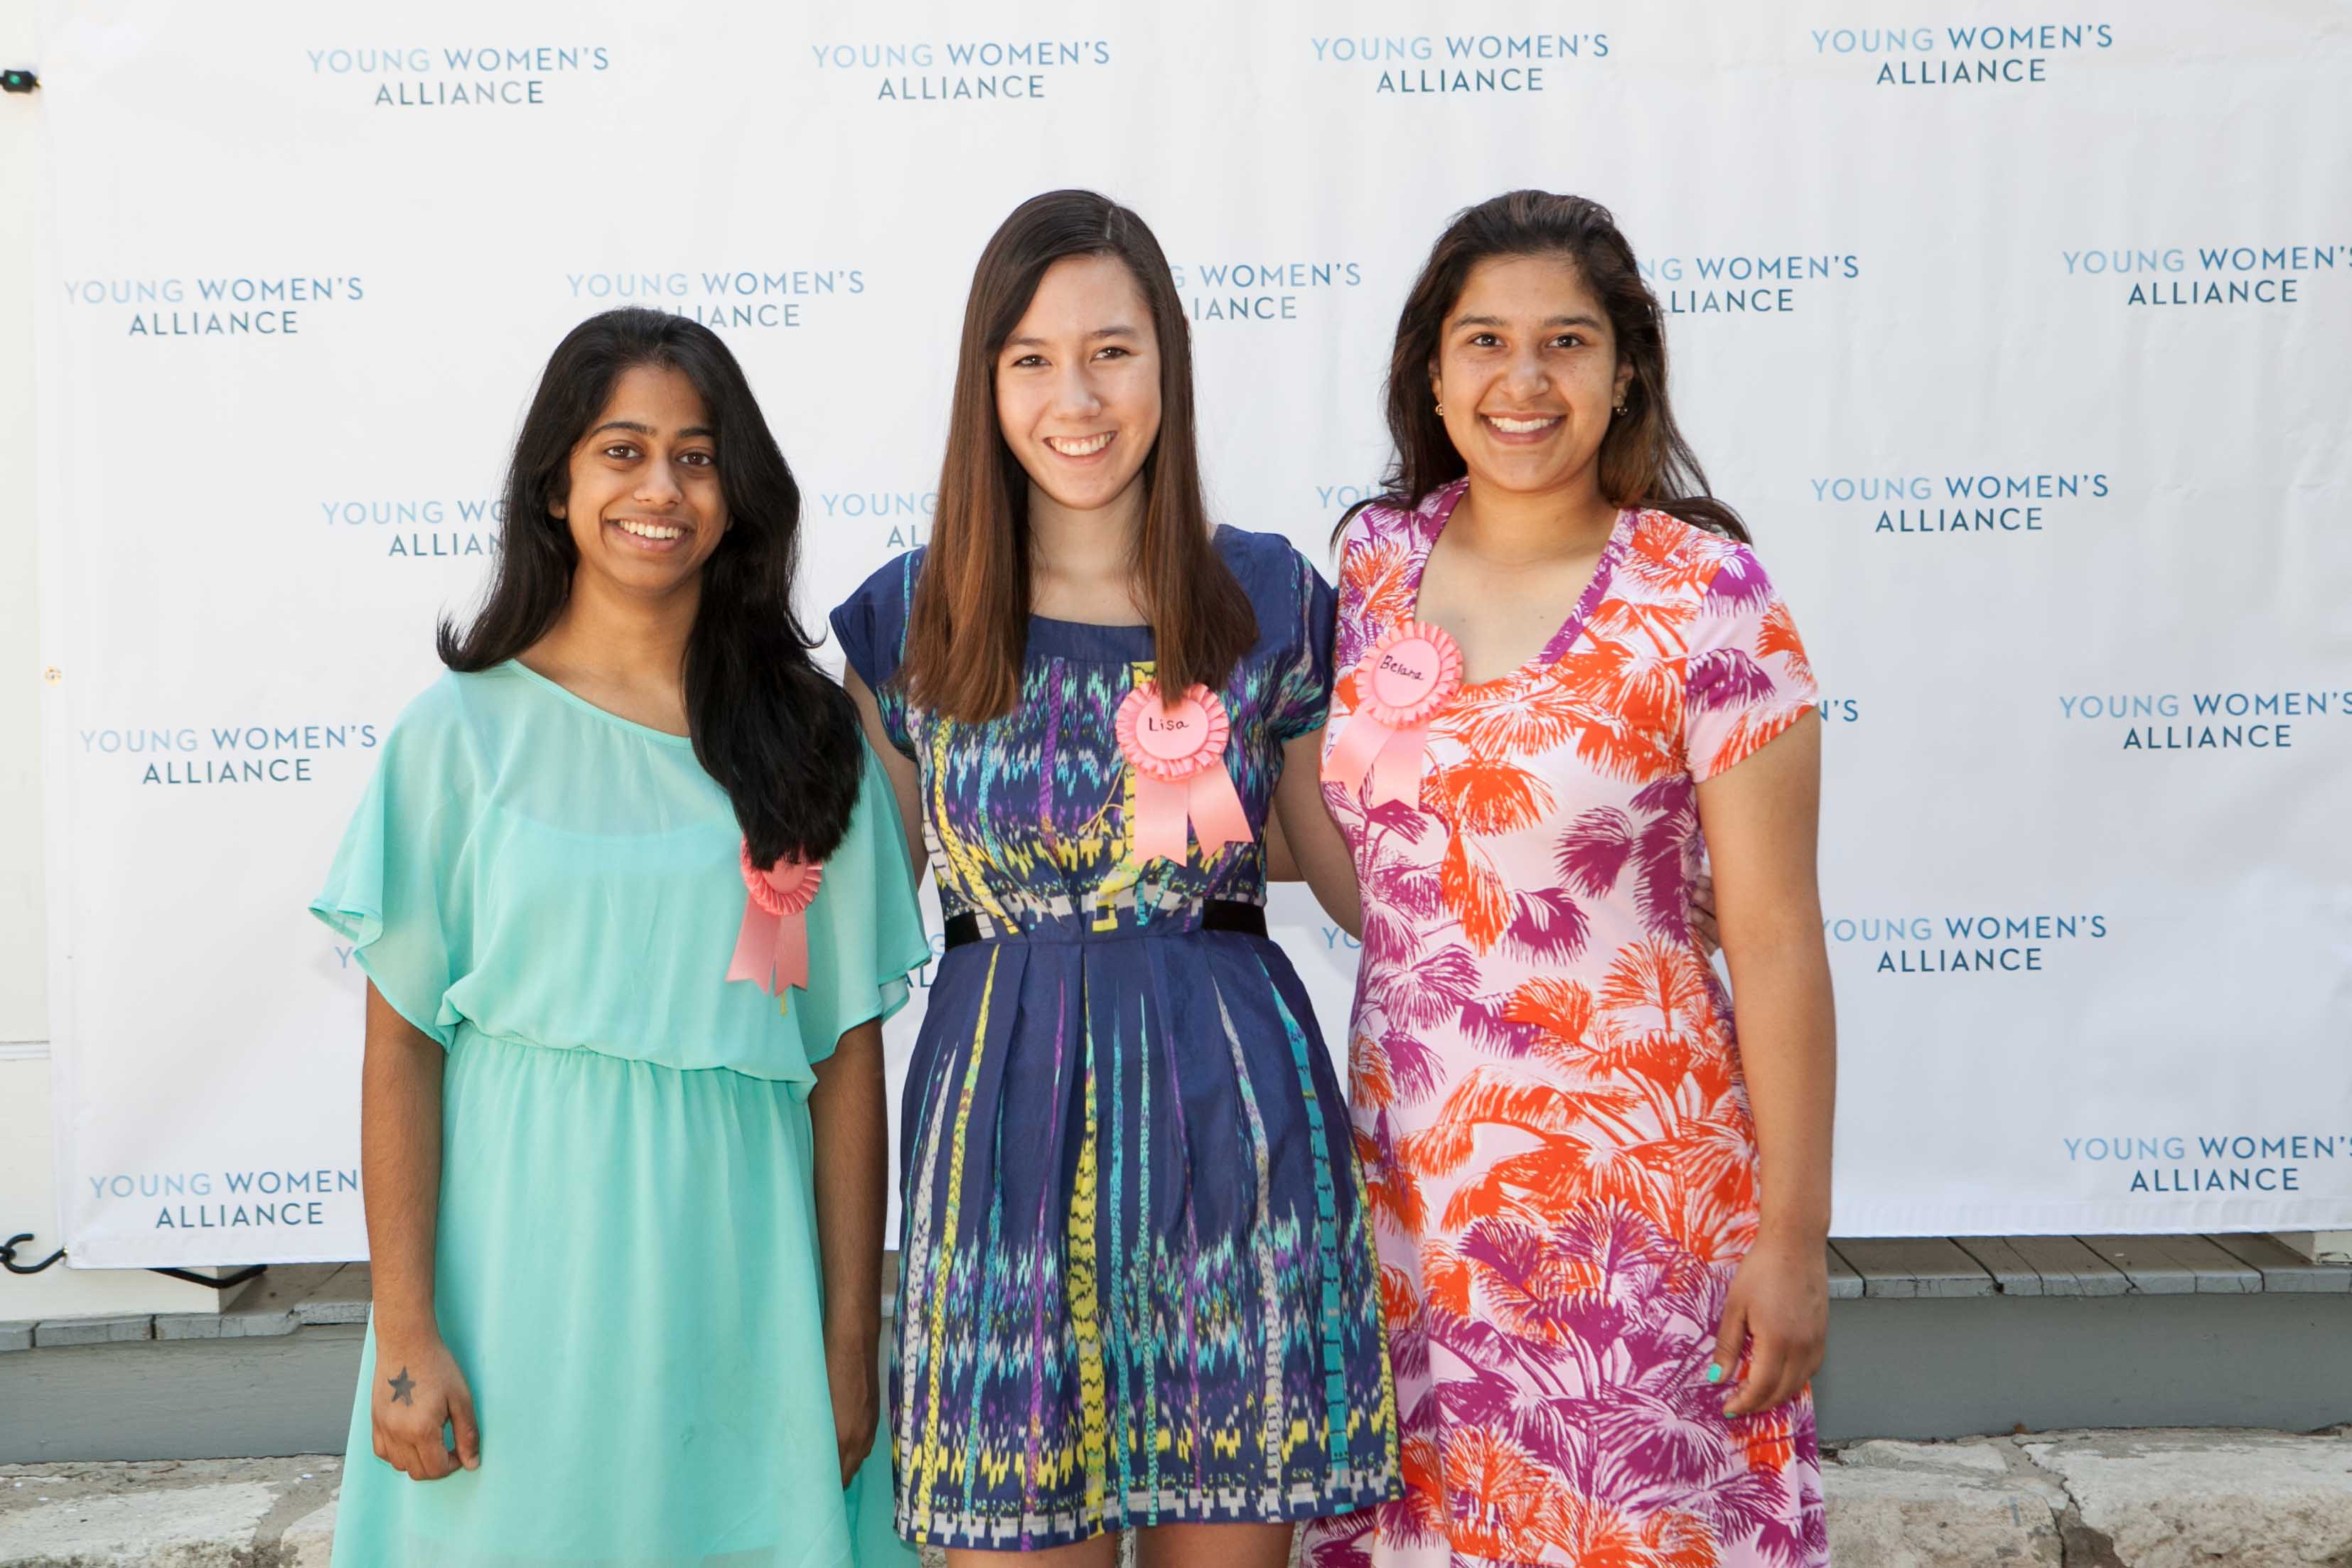 Help us provide educational scholarships and mentoring for women and girls in Austin. image